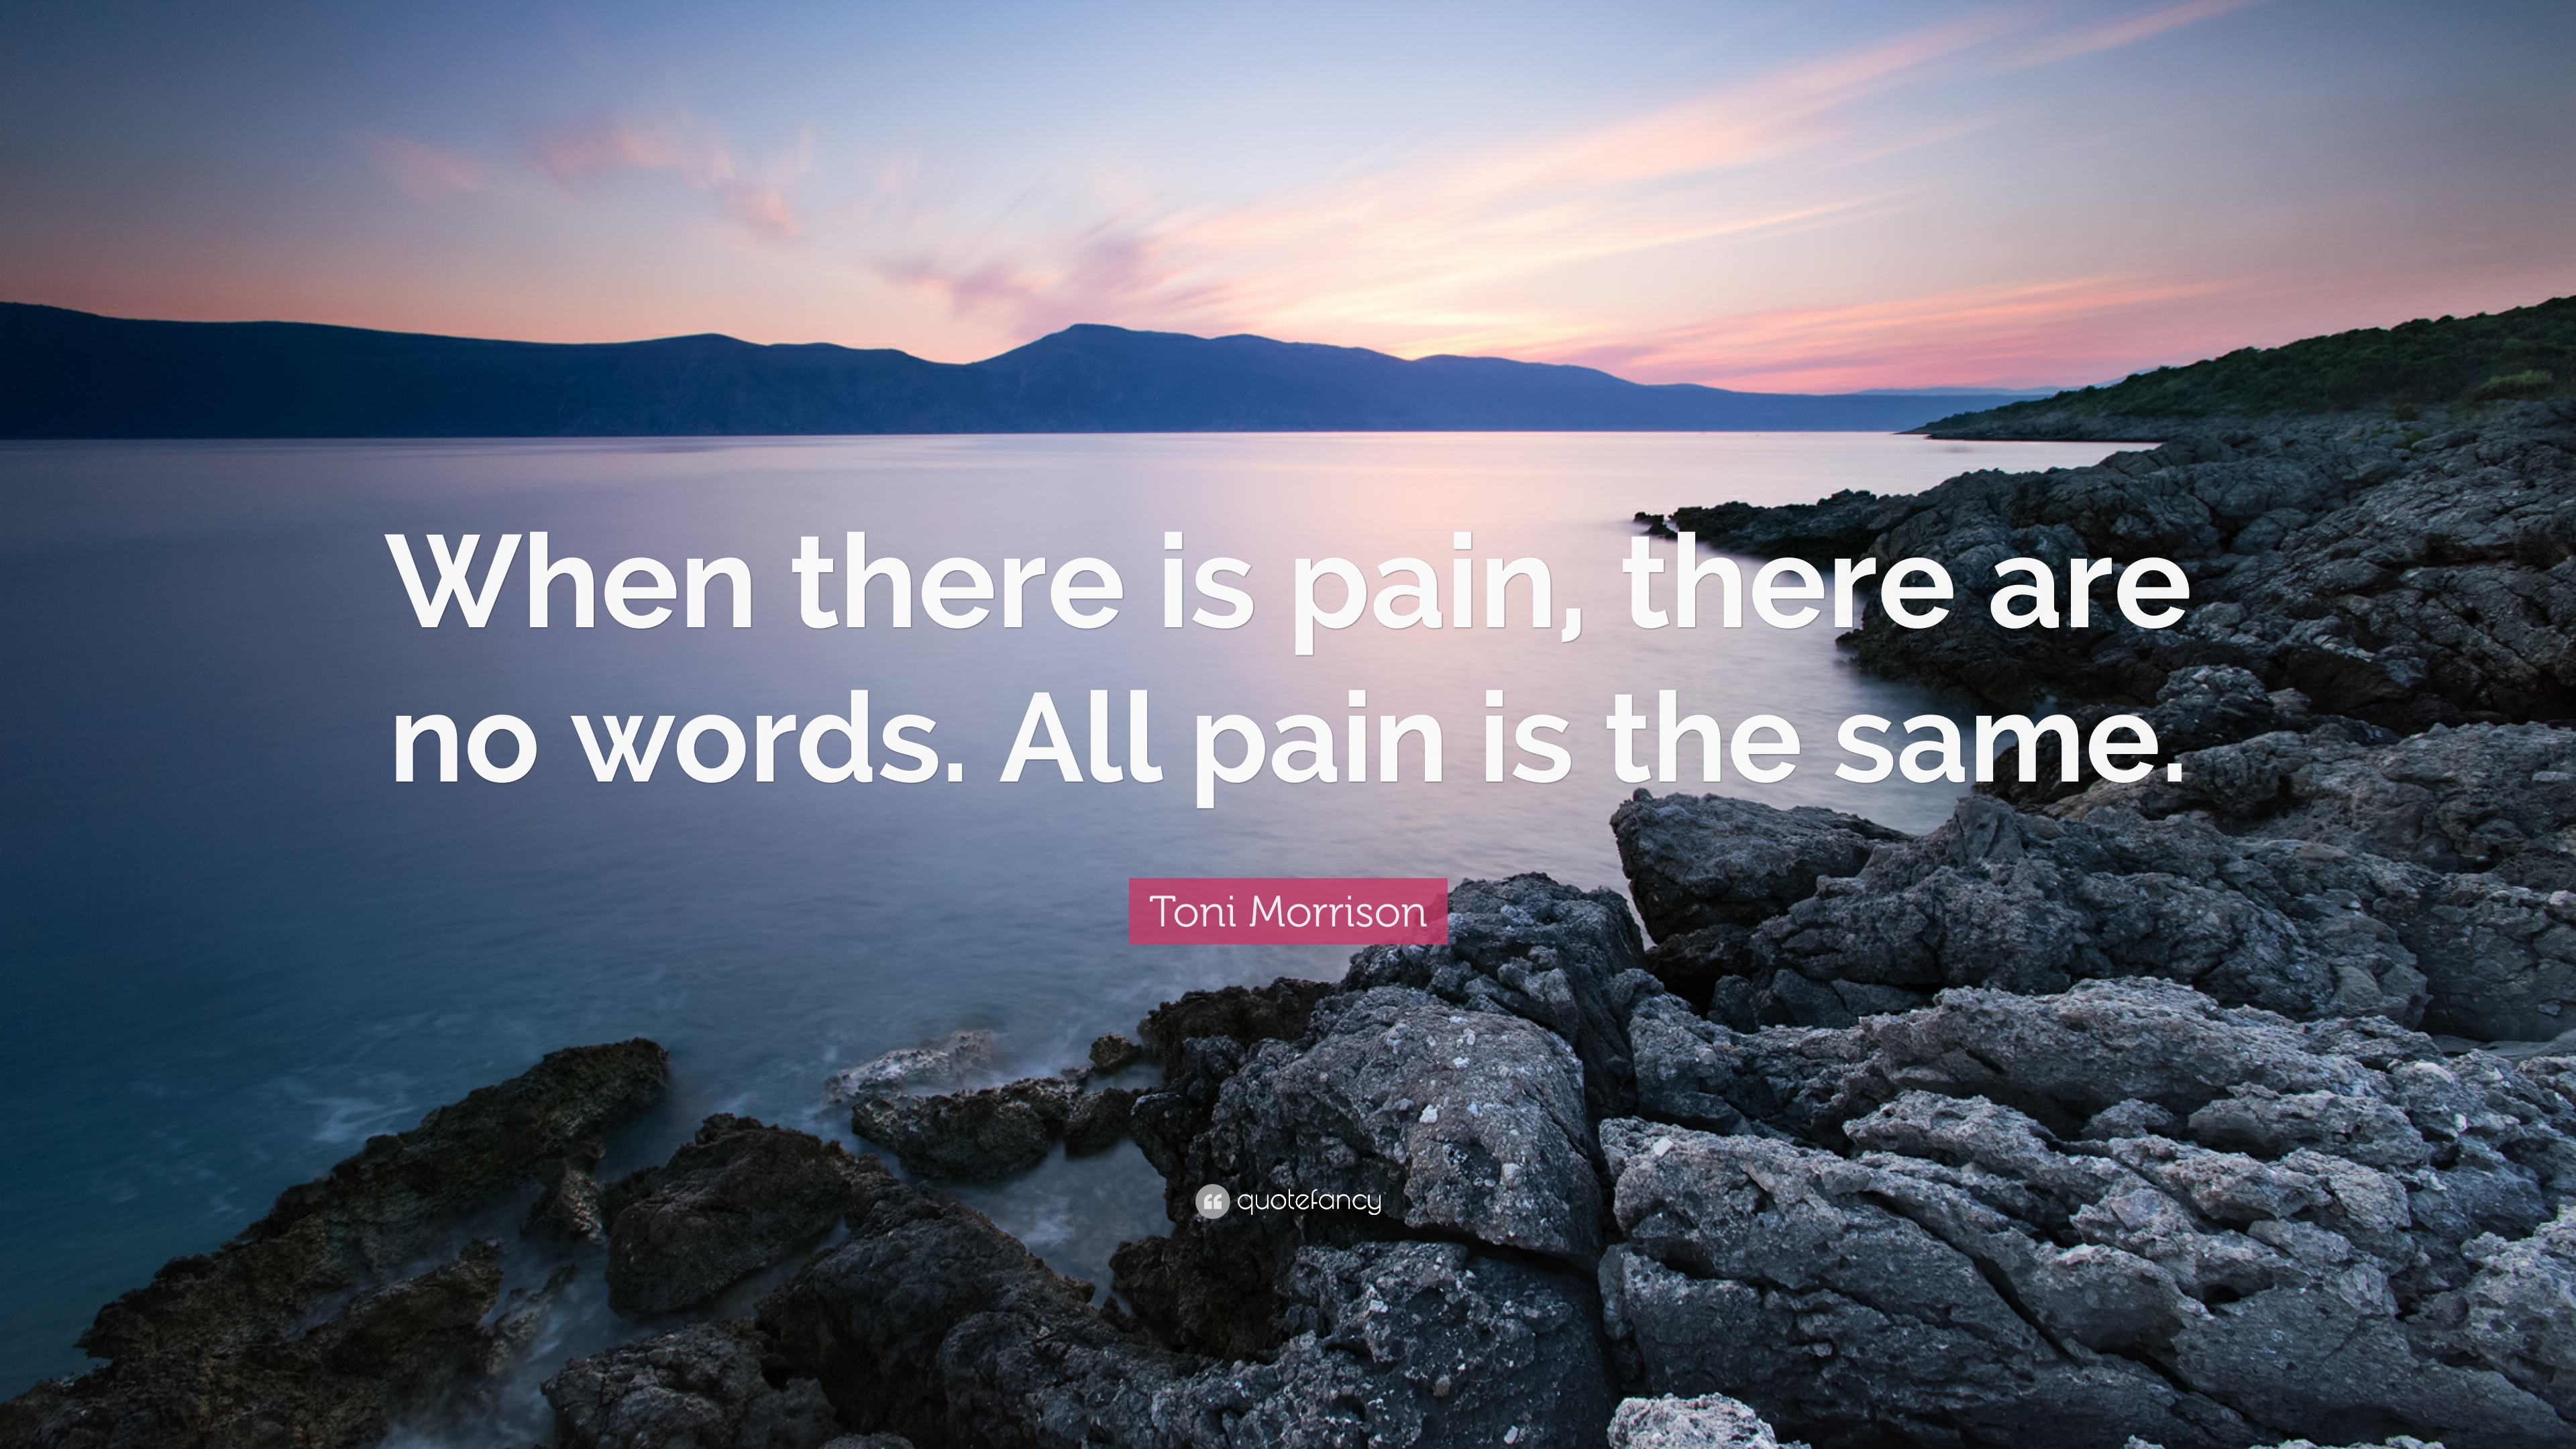 Toni Morrison Quote When There Is Pain There Are No Words All